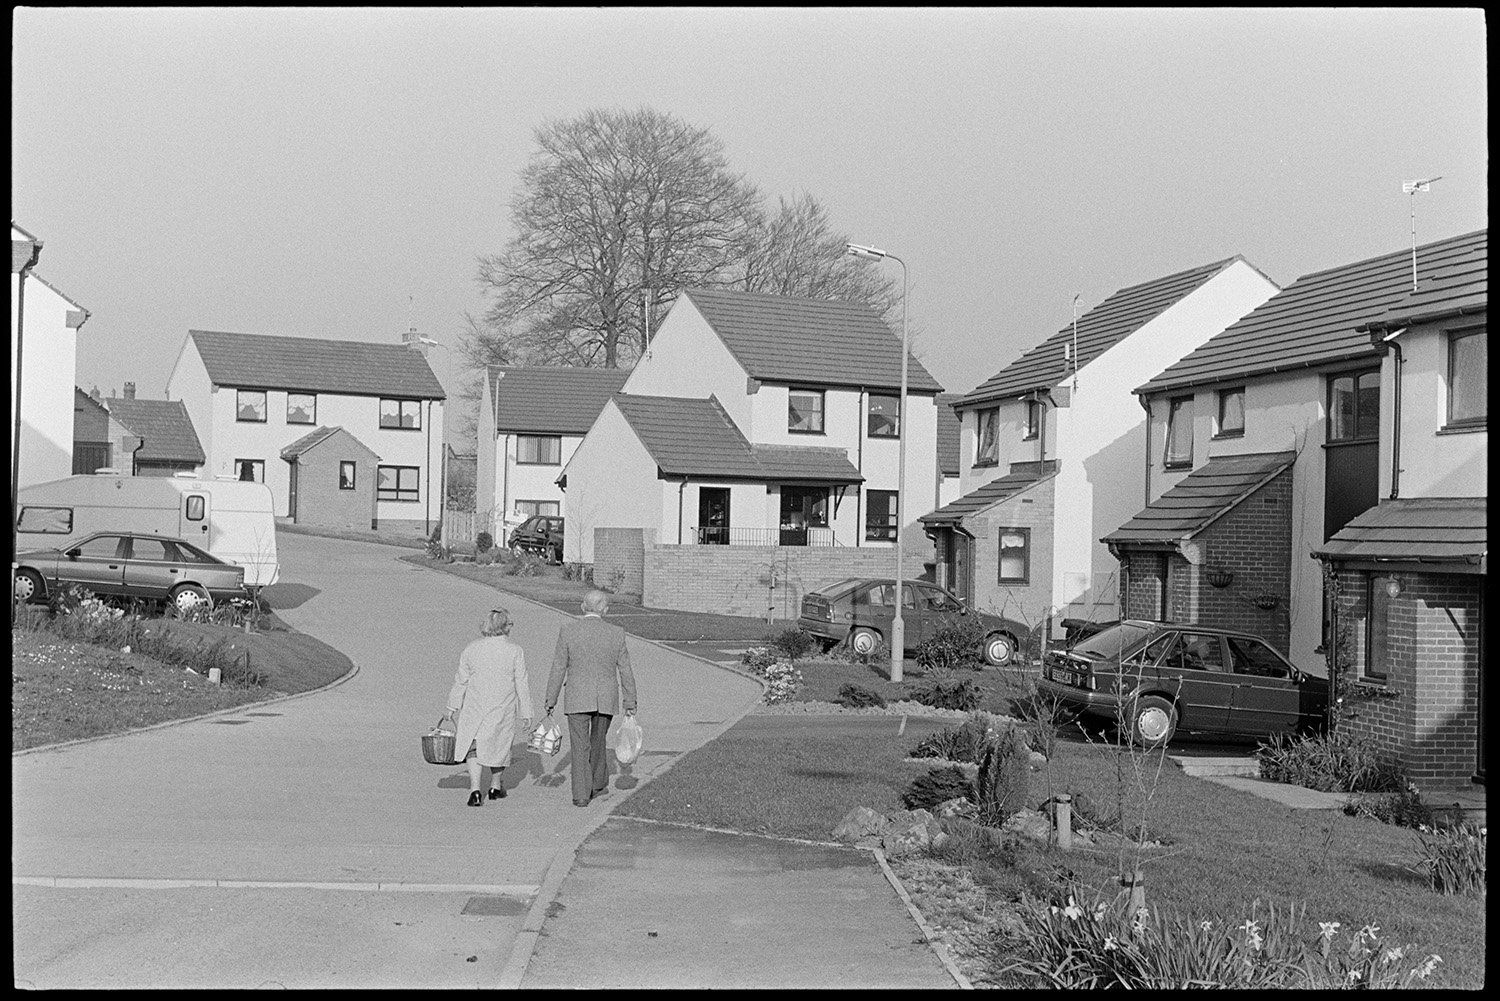 New housing estate. <br /> [A man and woman carrying shopping bags and walking through a new housing estate in South Molton. Cars are parked in the driveways of the houses.]